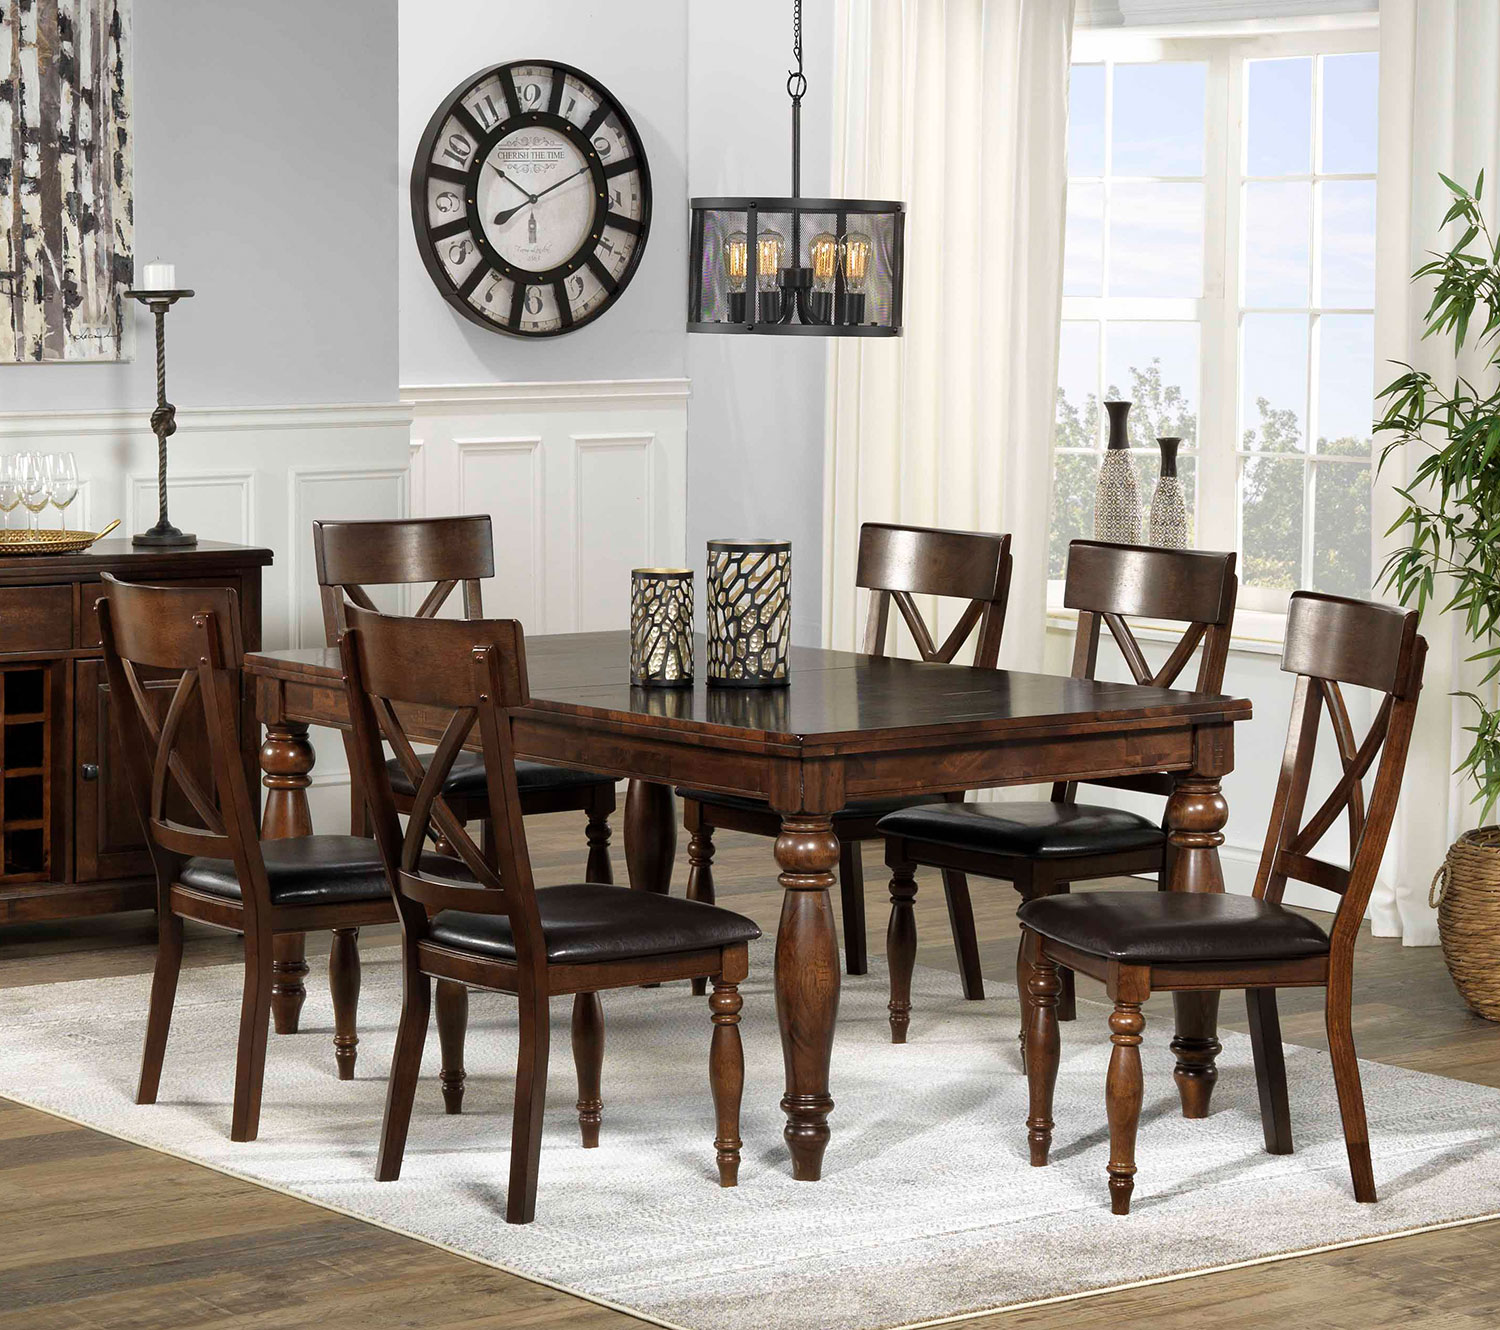 Kingstown 7-Piece Dining Room Set - Chocolate